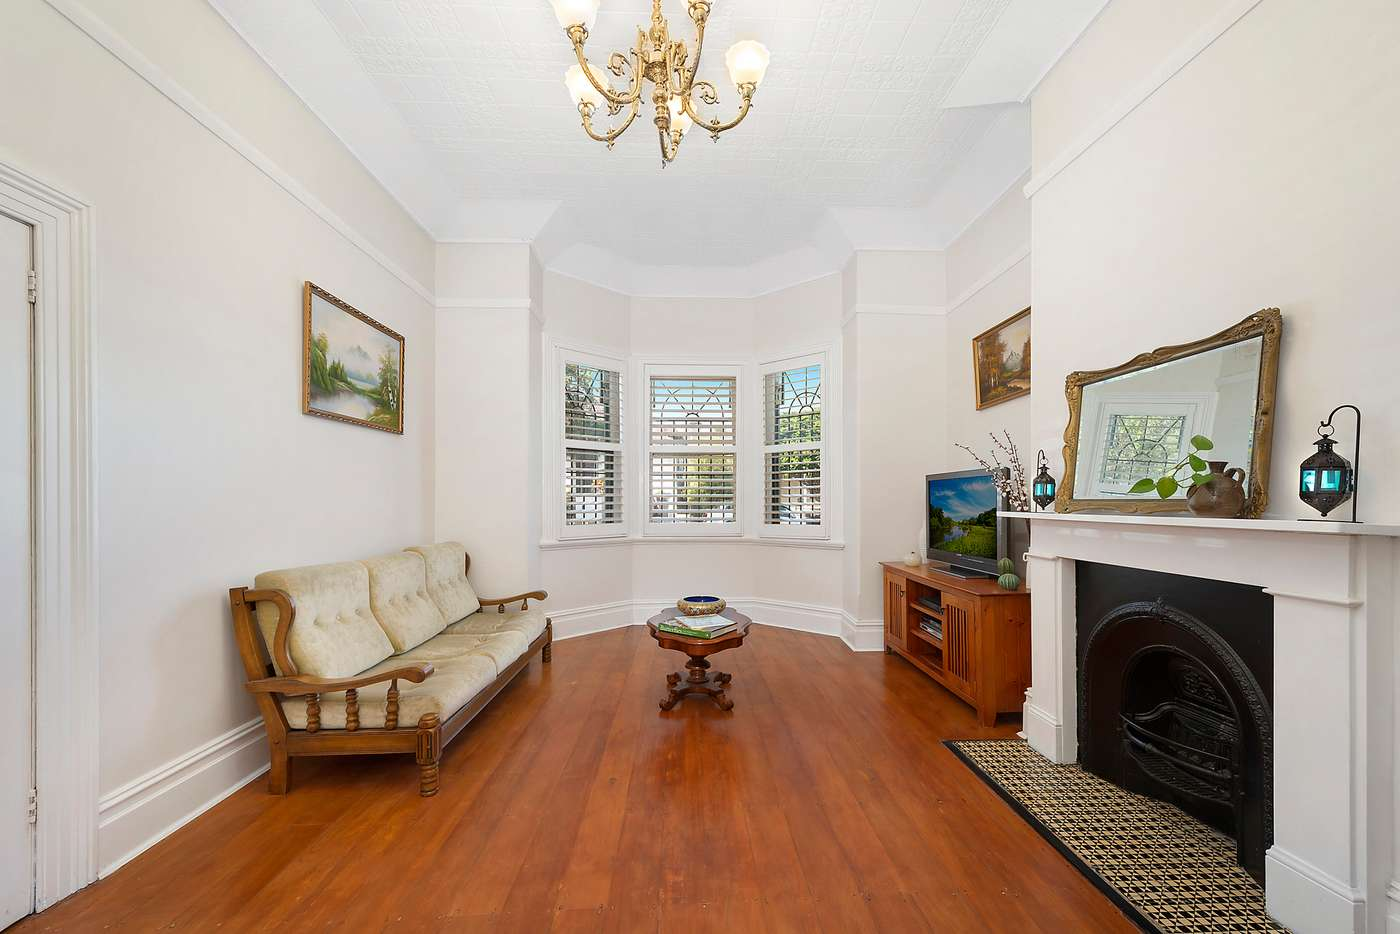 Fifth view of Homely house listing, 7 Joseph Street, Ashfield NSW 2131